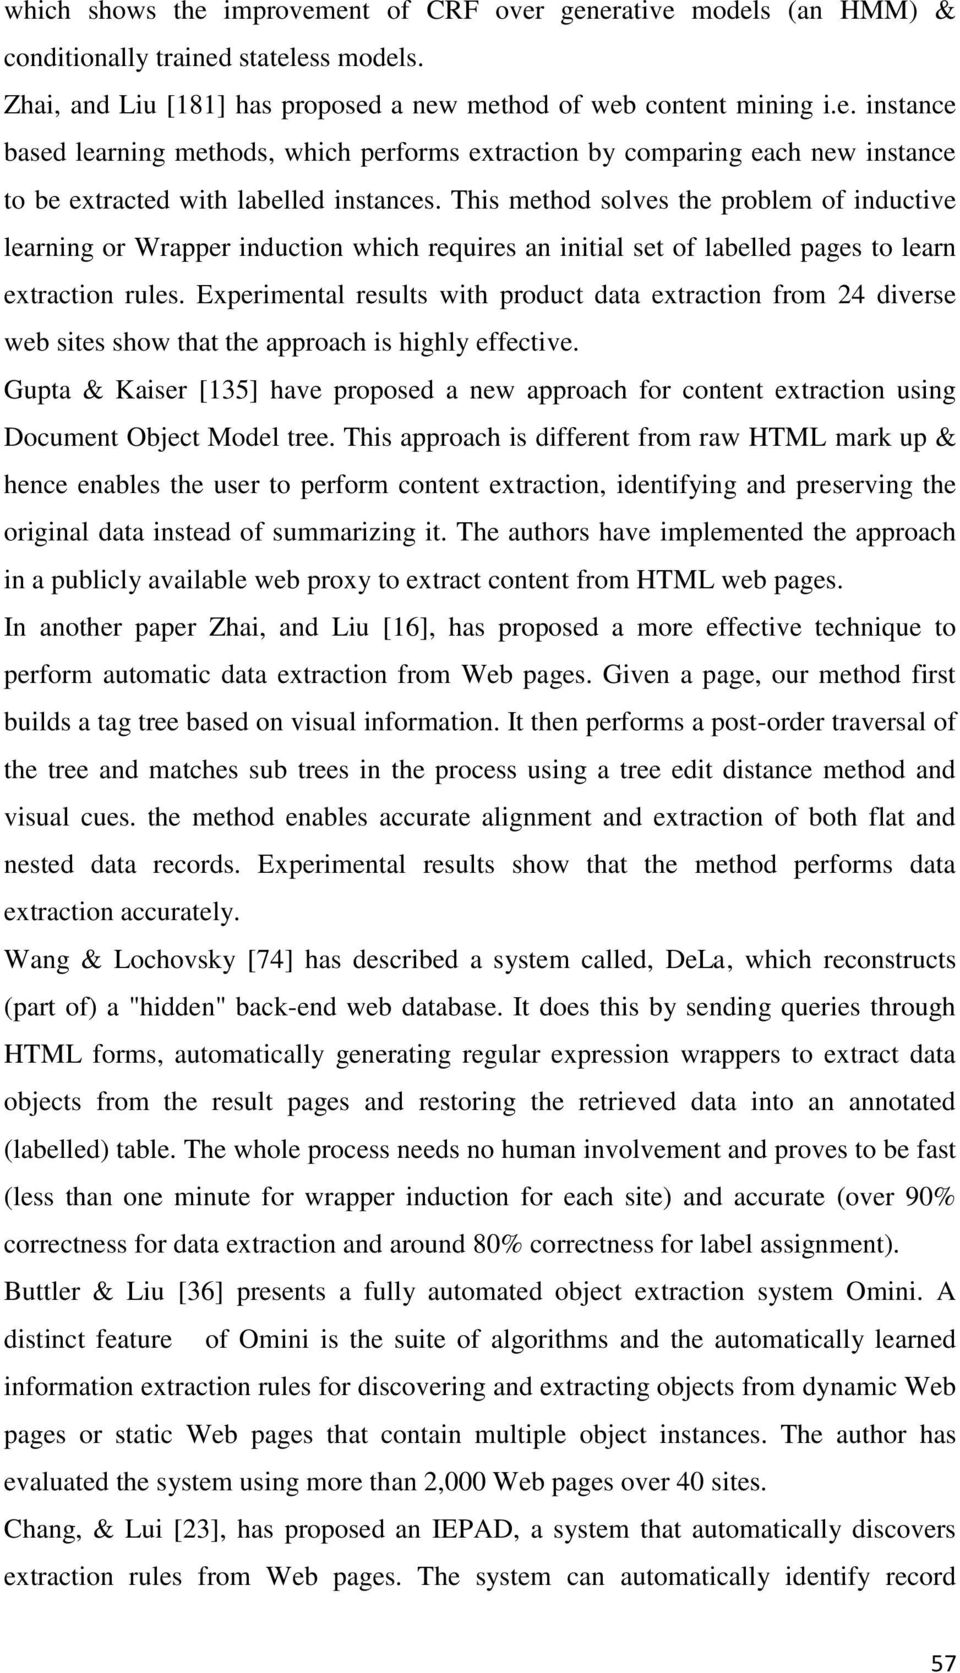 Experimental results with product data extraction from 24 diverse web sites show that the approach is highly effective.